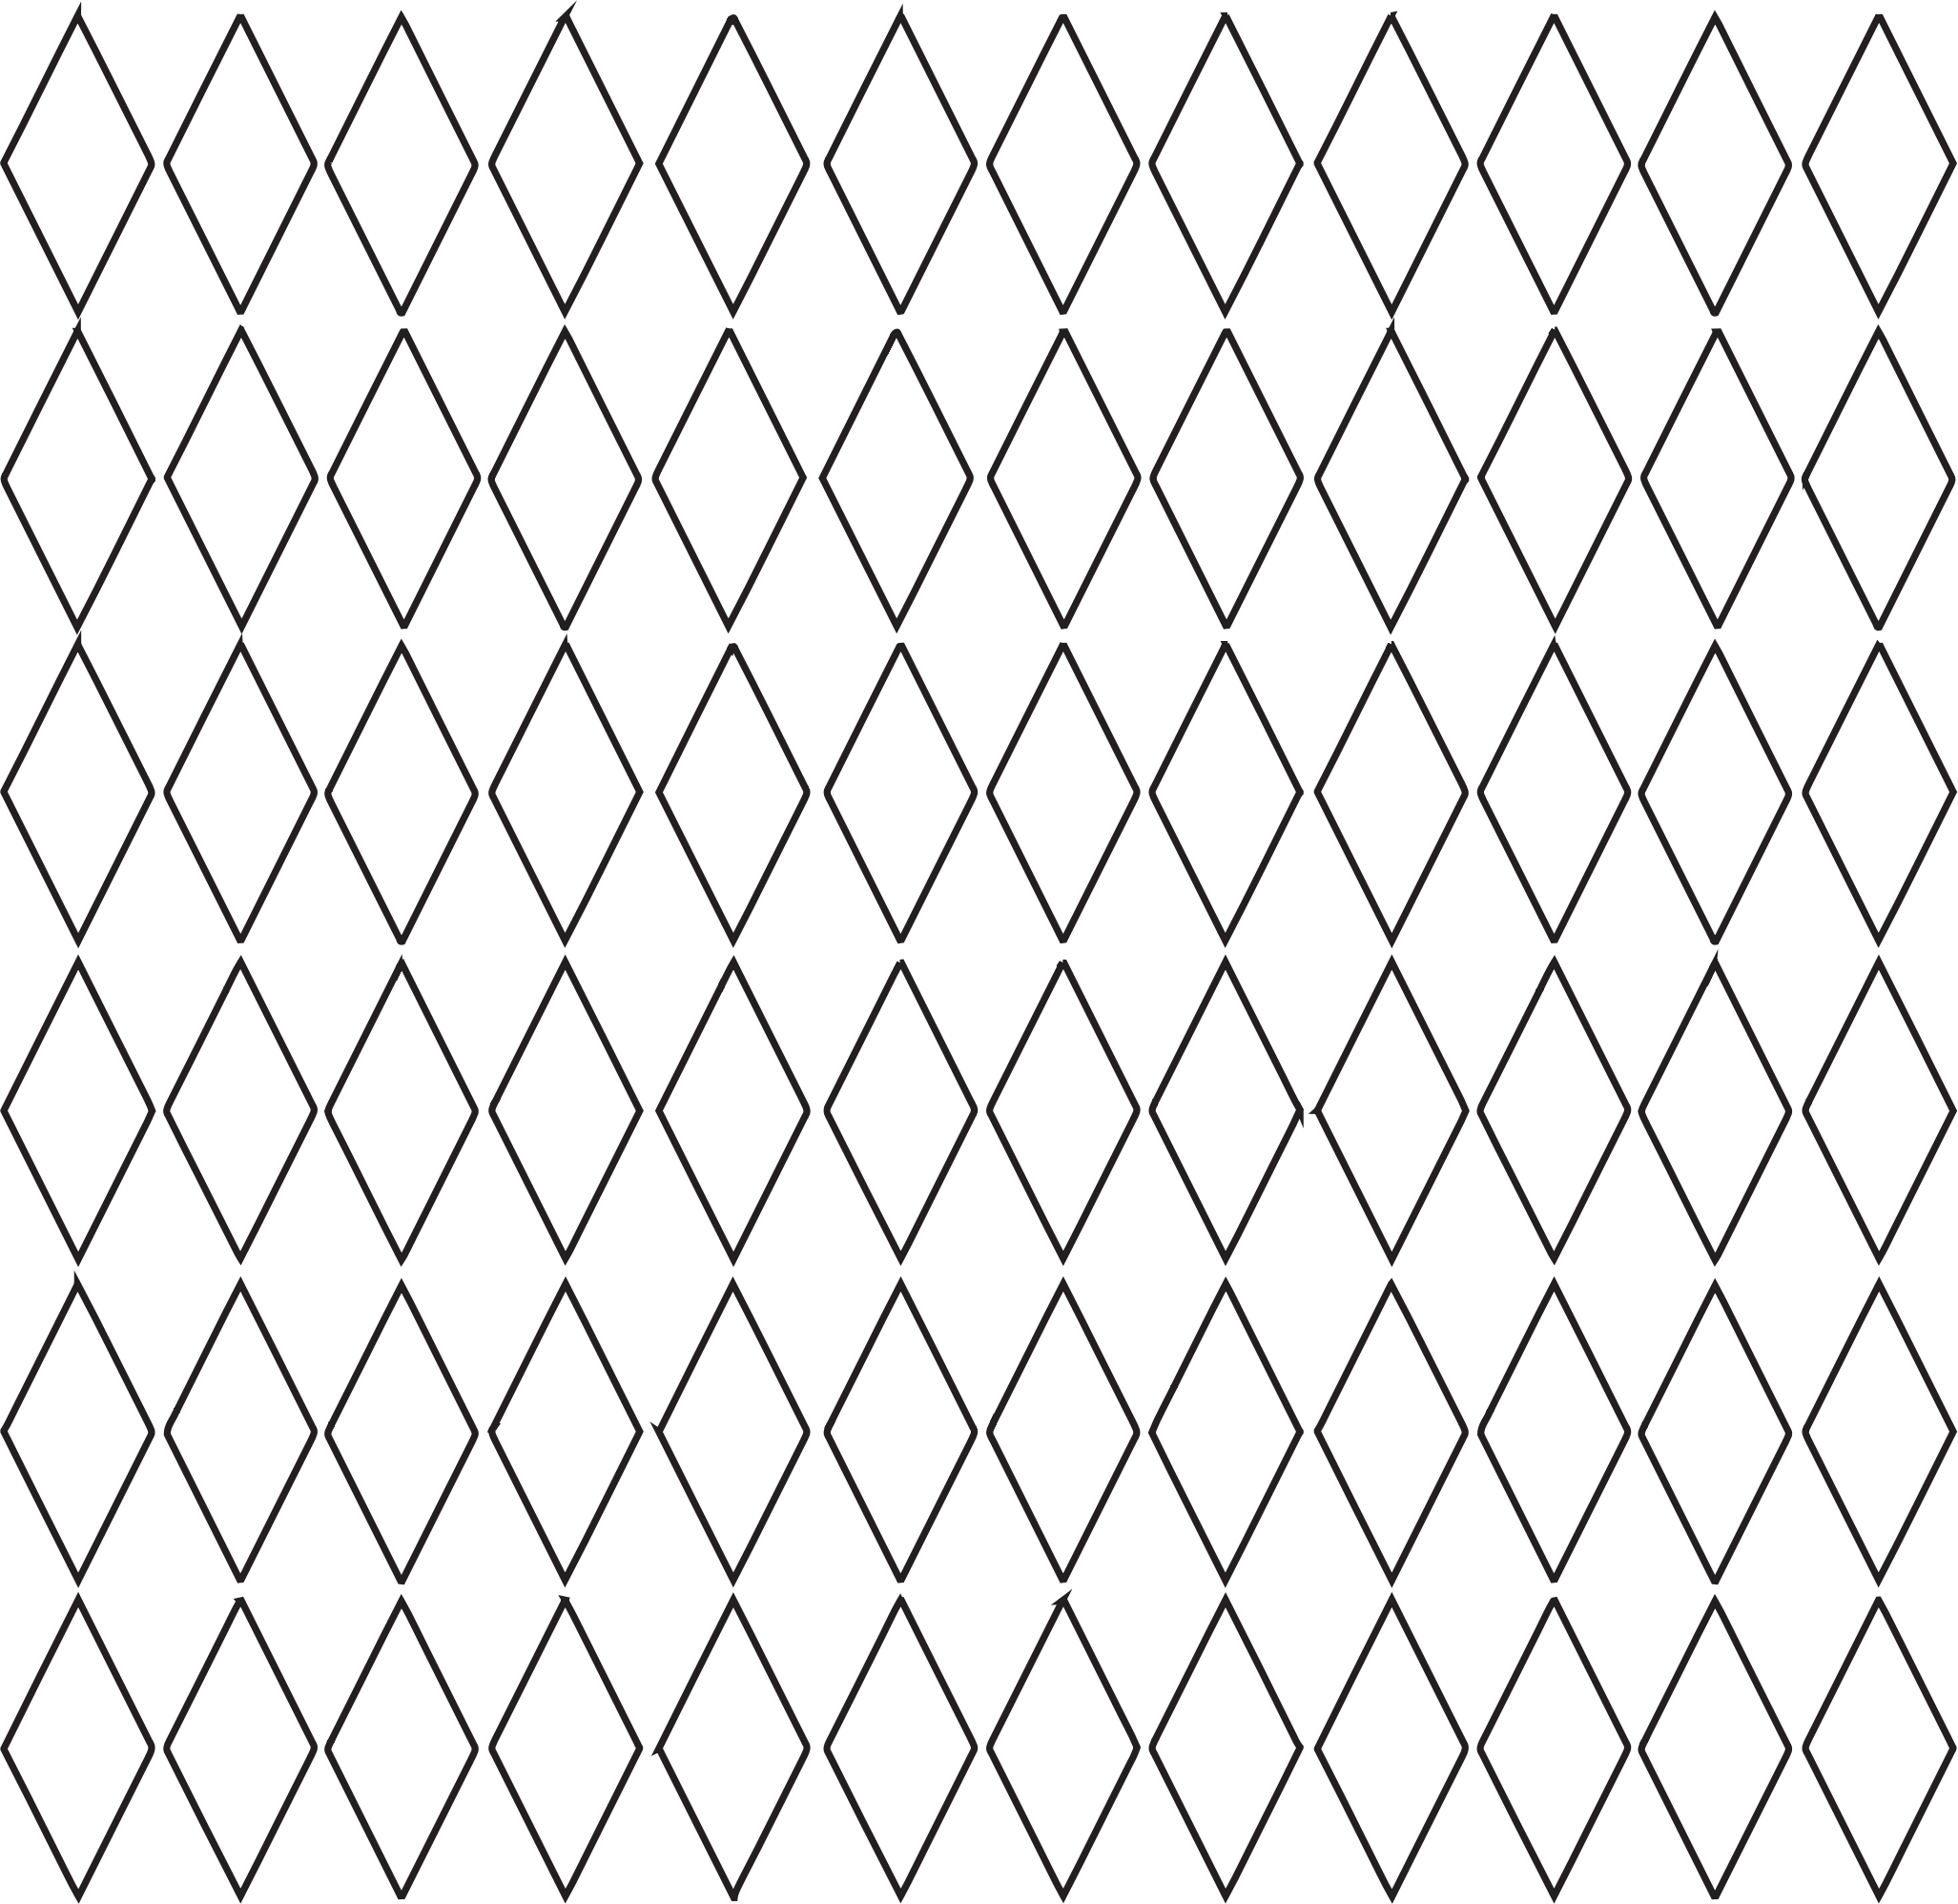 Diamond grid no color. Pattern clipart graphic library stock